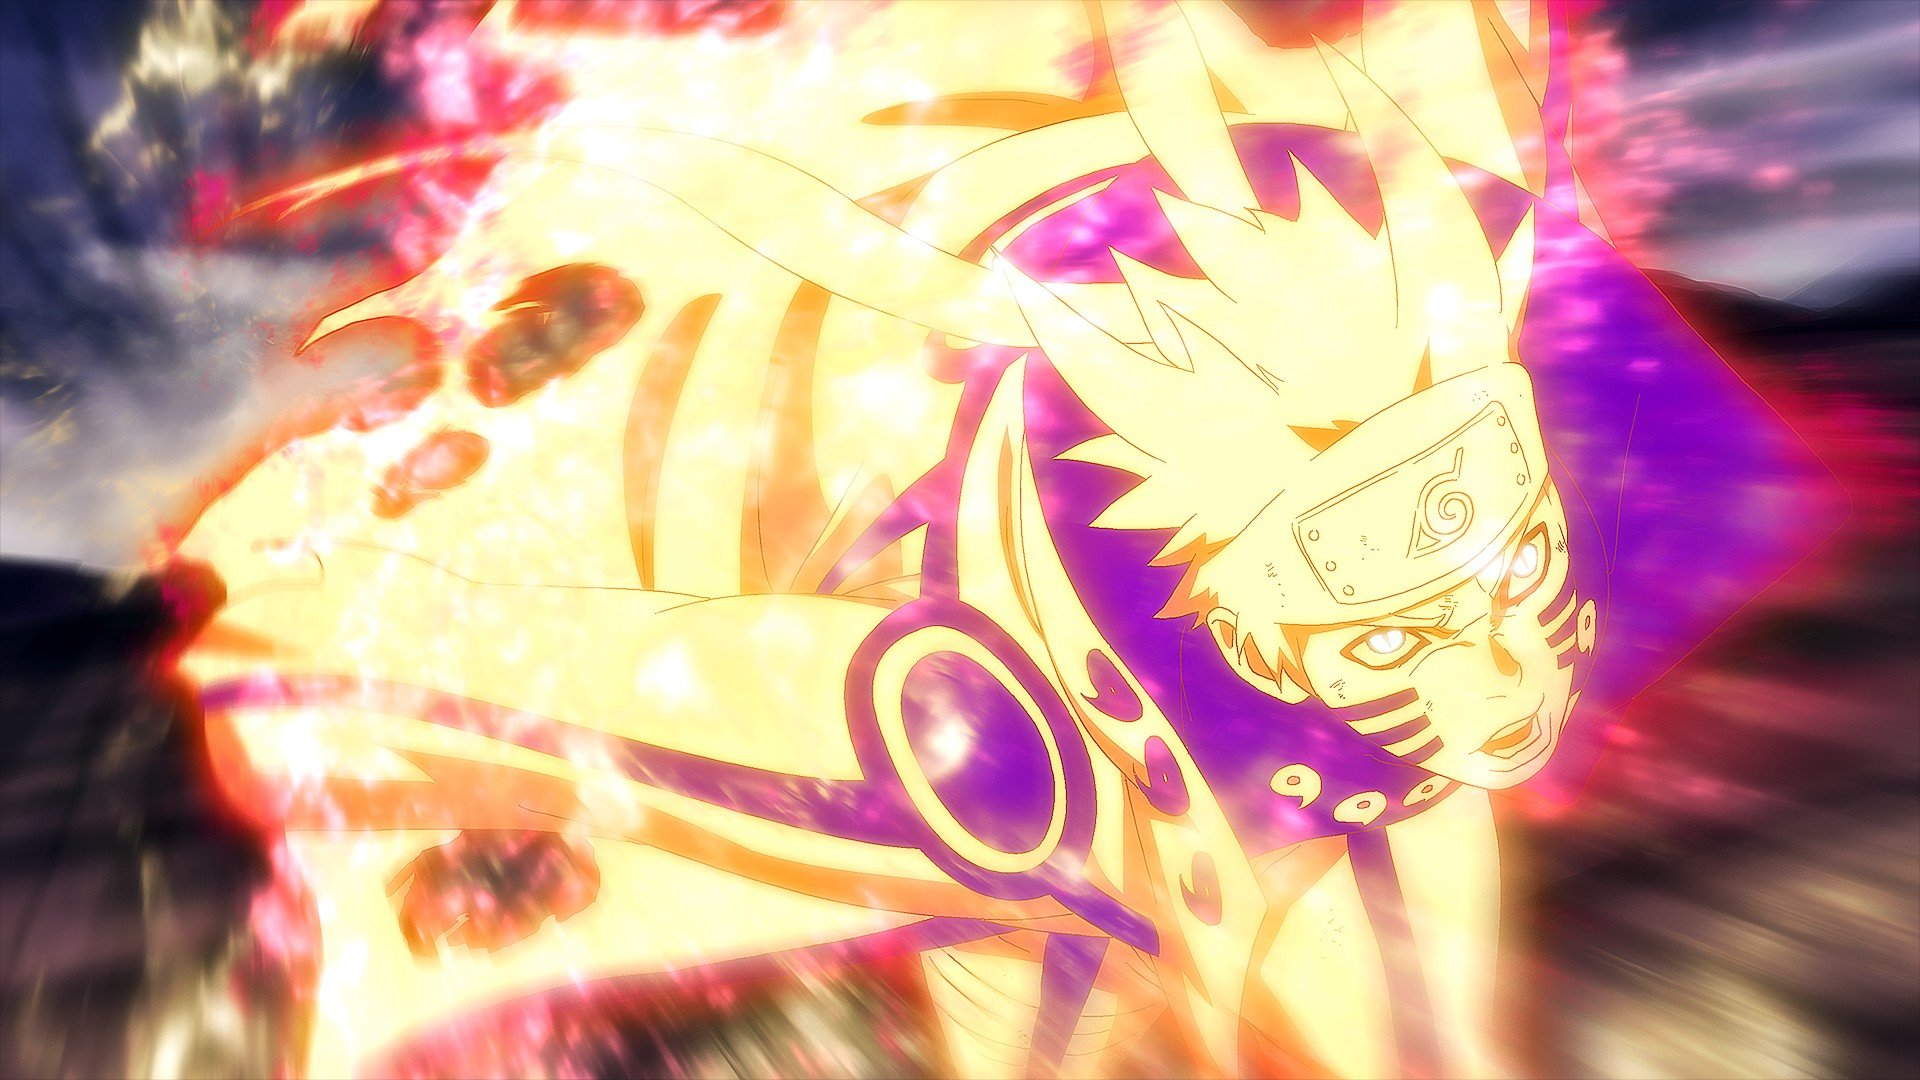 awesome naruto uzumaki free wallpaper id:395527 for full hd 1080p